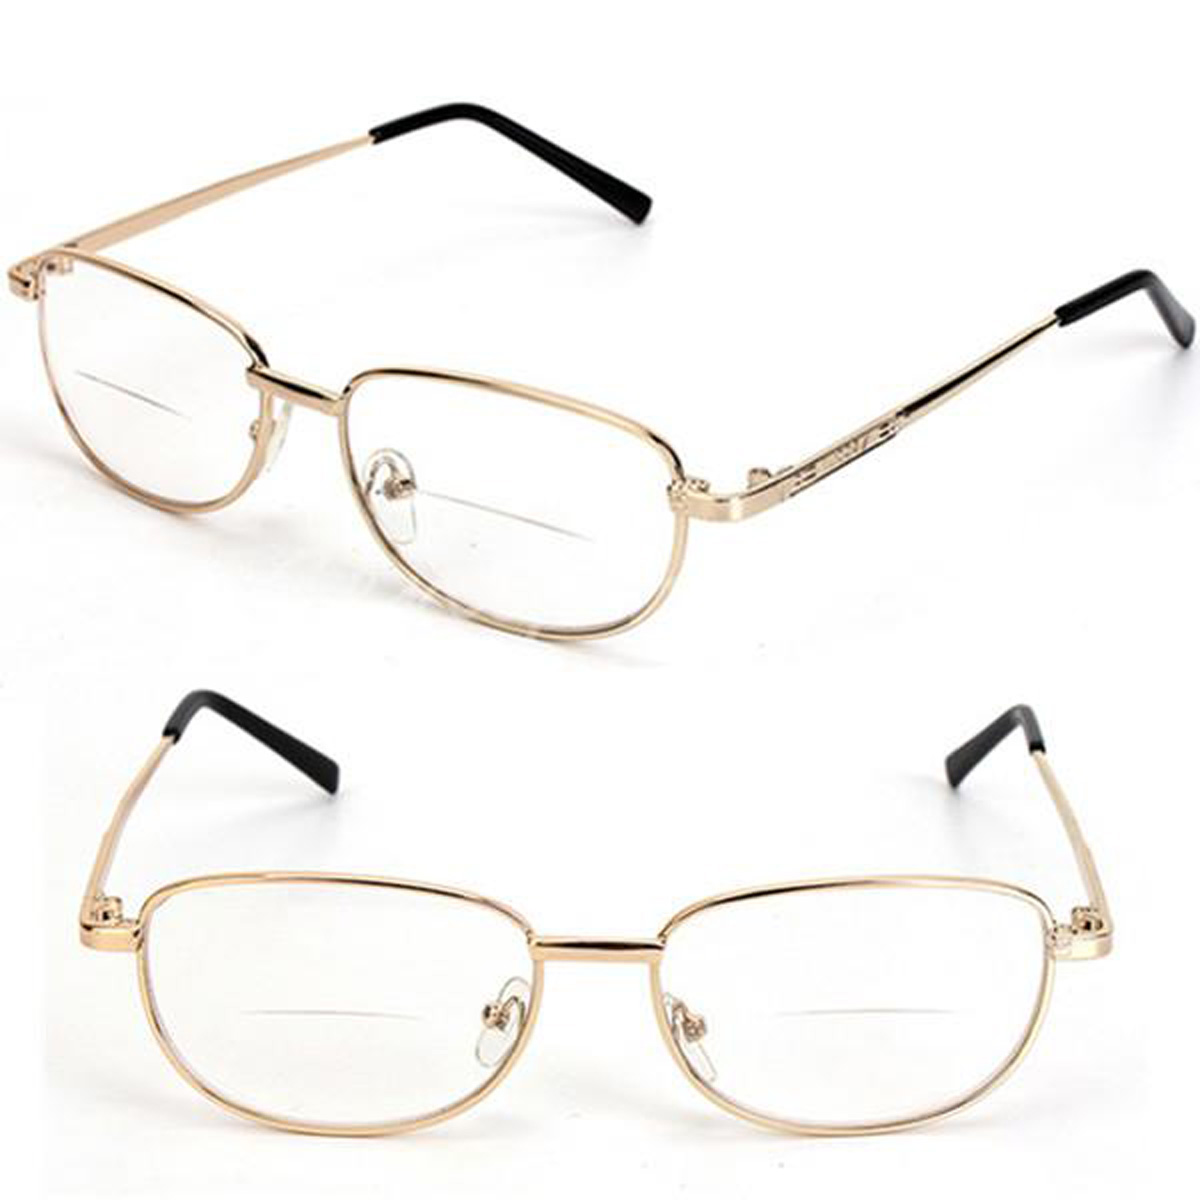 Fashion Bifocal Lens Rimmed Men\'s Reading Glasses Gold Metal Frame ...